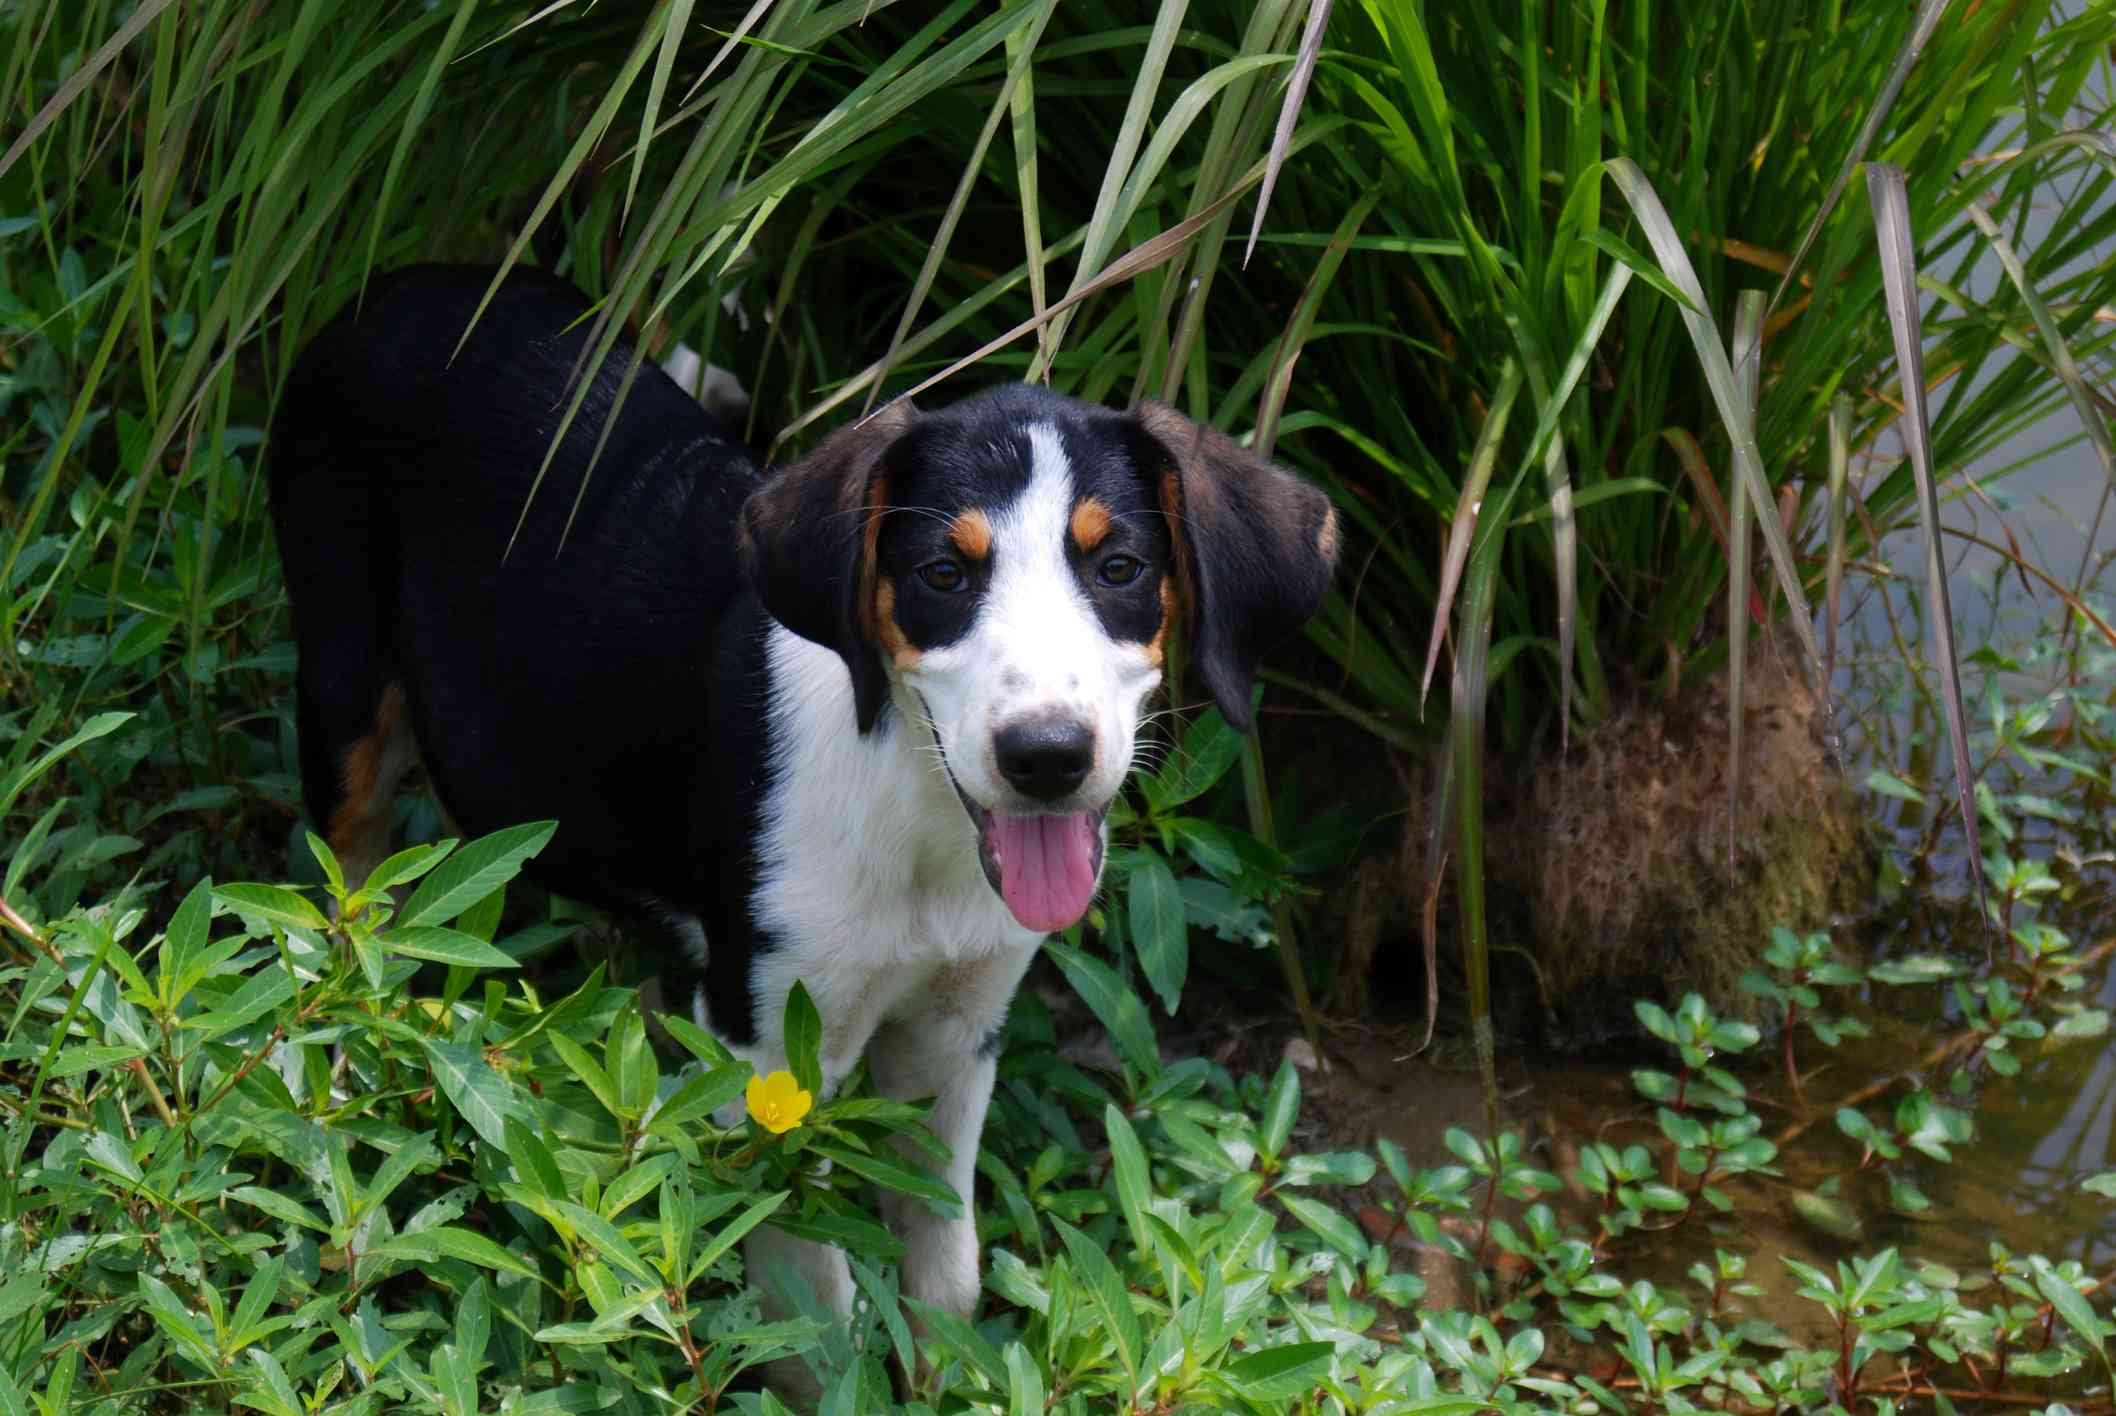 A young Treeing Walker Coonhound in water